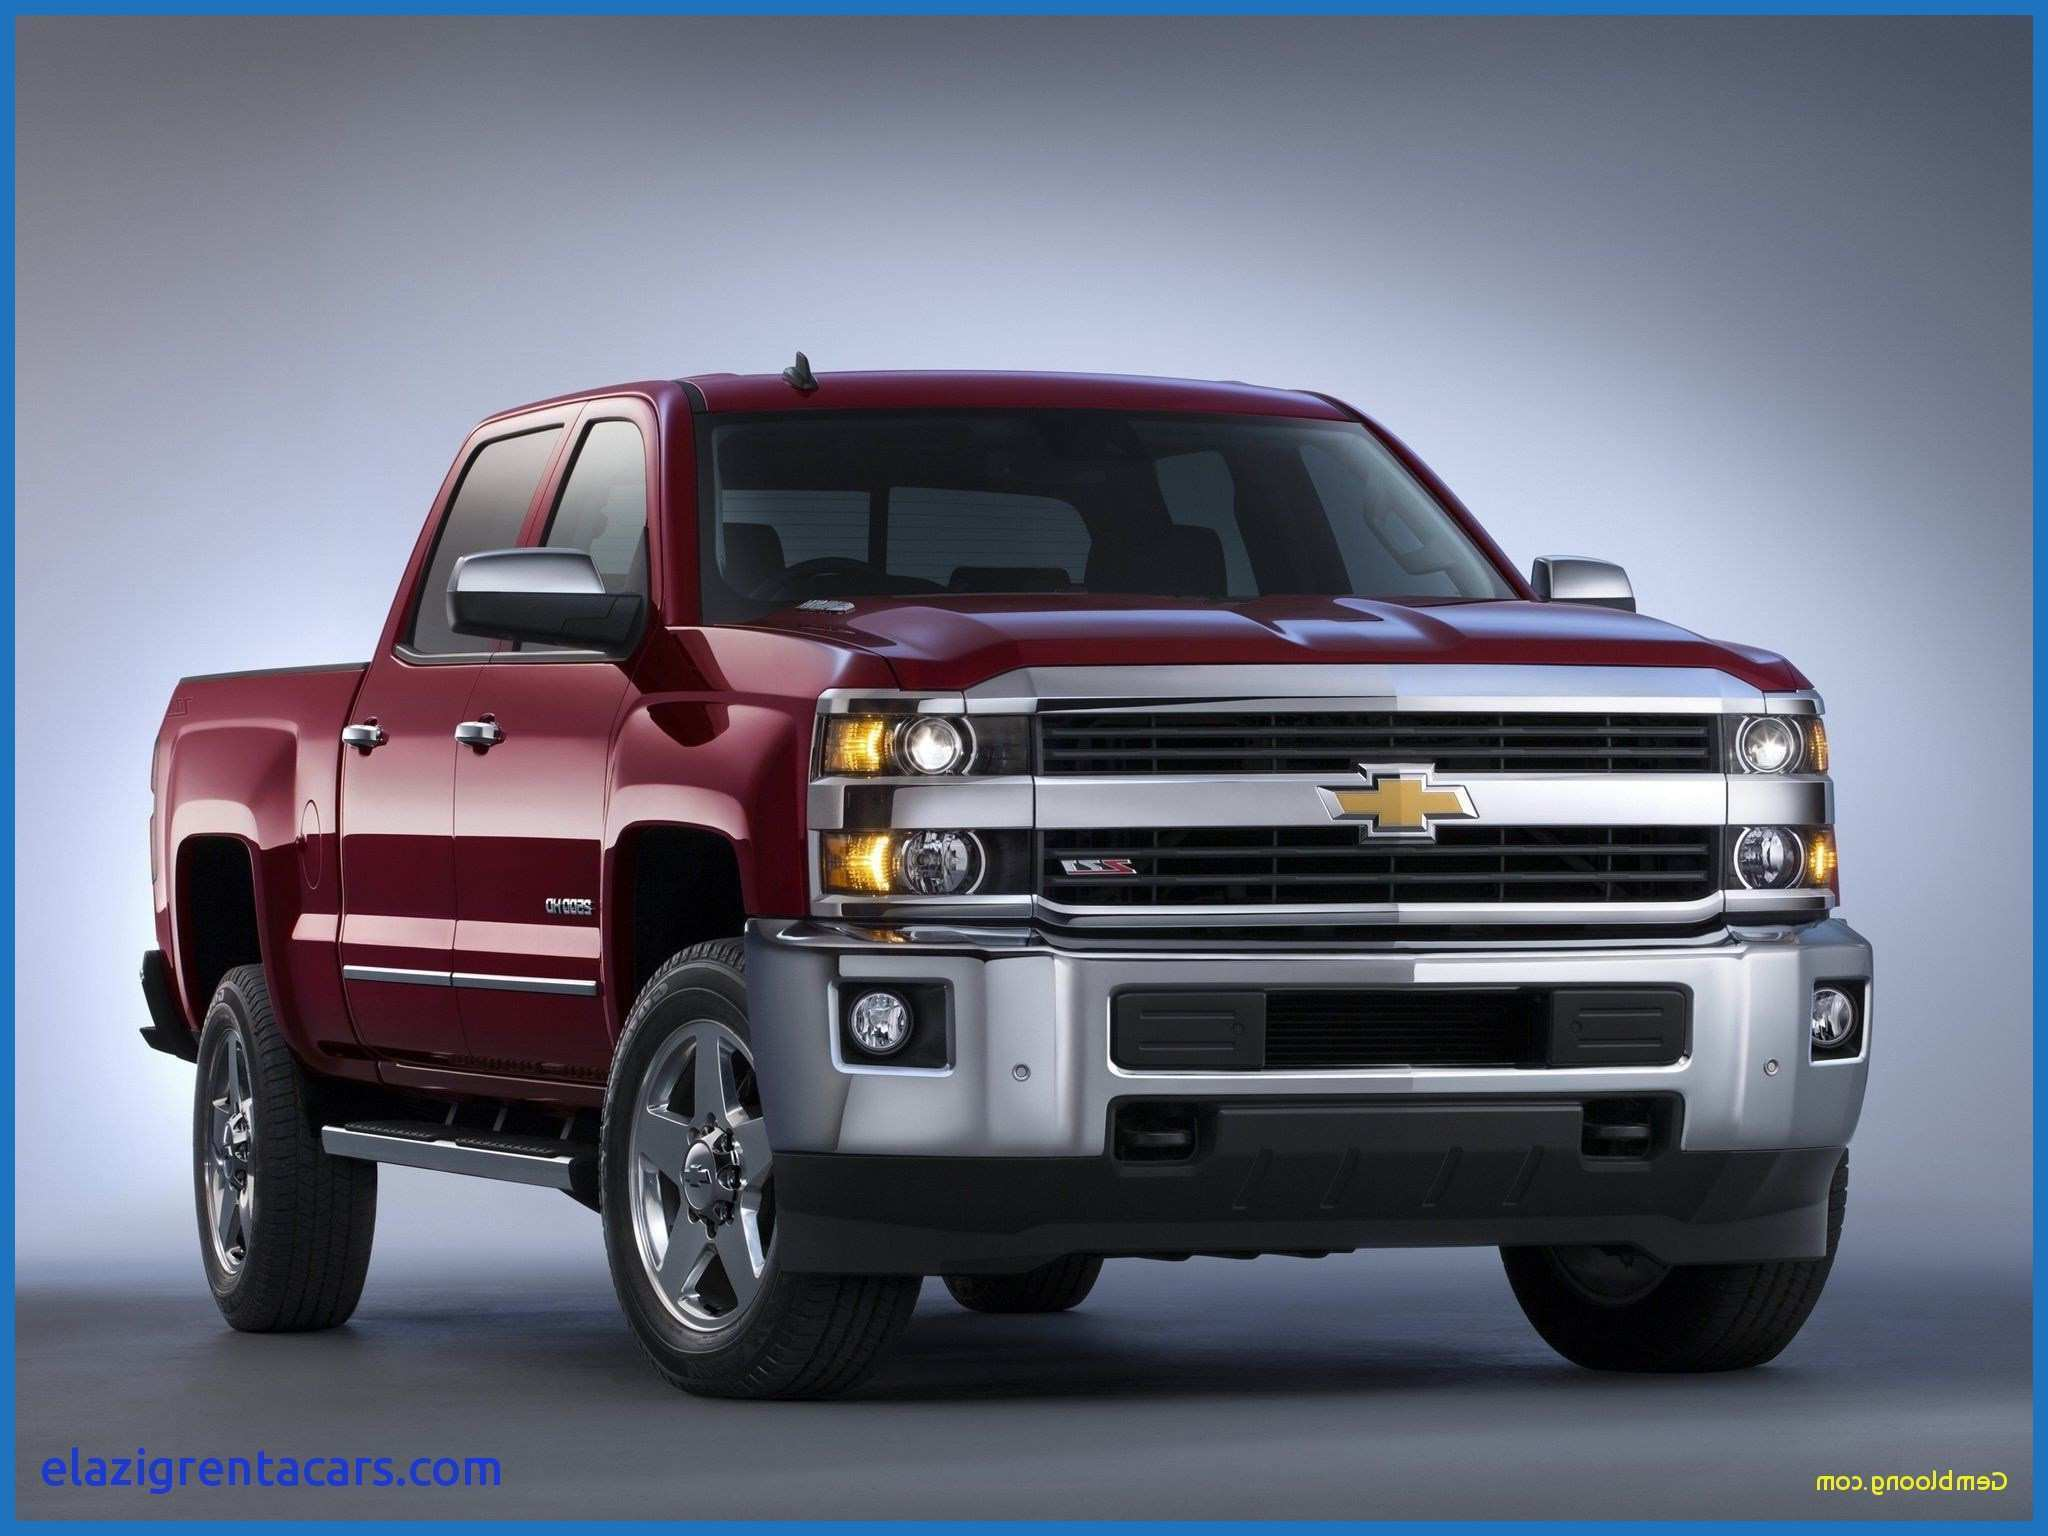 57 Great The 2019 Chevrolet Duramax Specs Price And Release Date Release Date by The 2019 Chevrolet Duramax Specs Price And Release Date